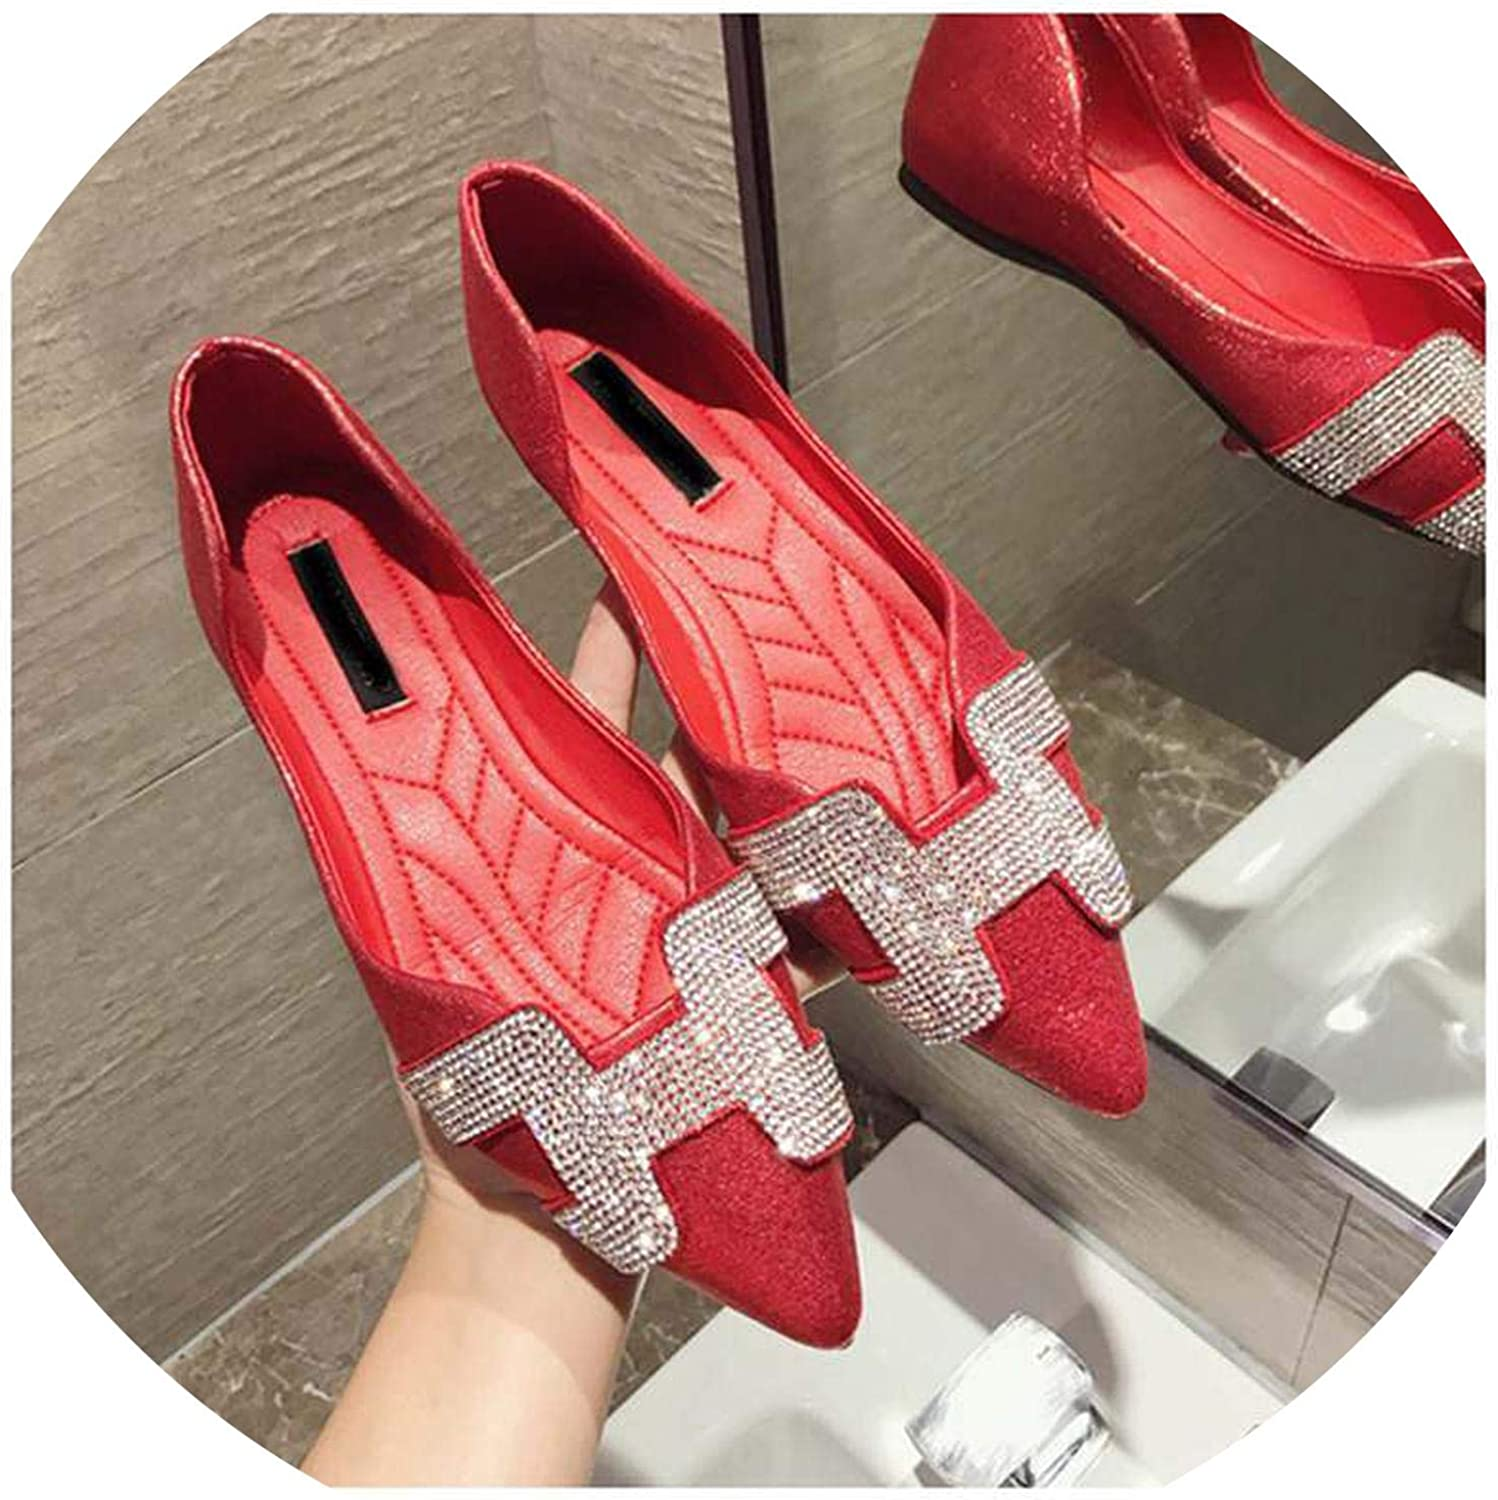 FAT BABY Fashion Women Flat Ballet shoes Bling Crystal Pointed Toe Flats shoes Elegant Comfortable Lady Shiny shoes